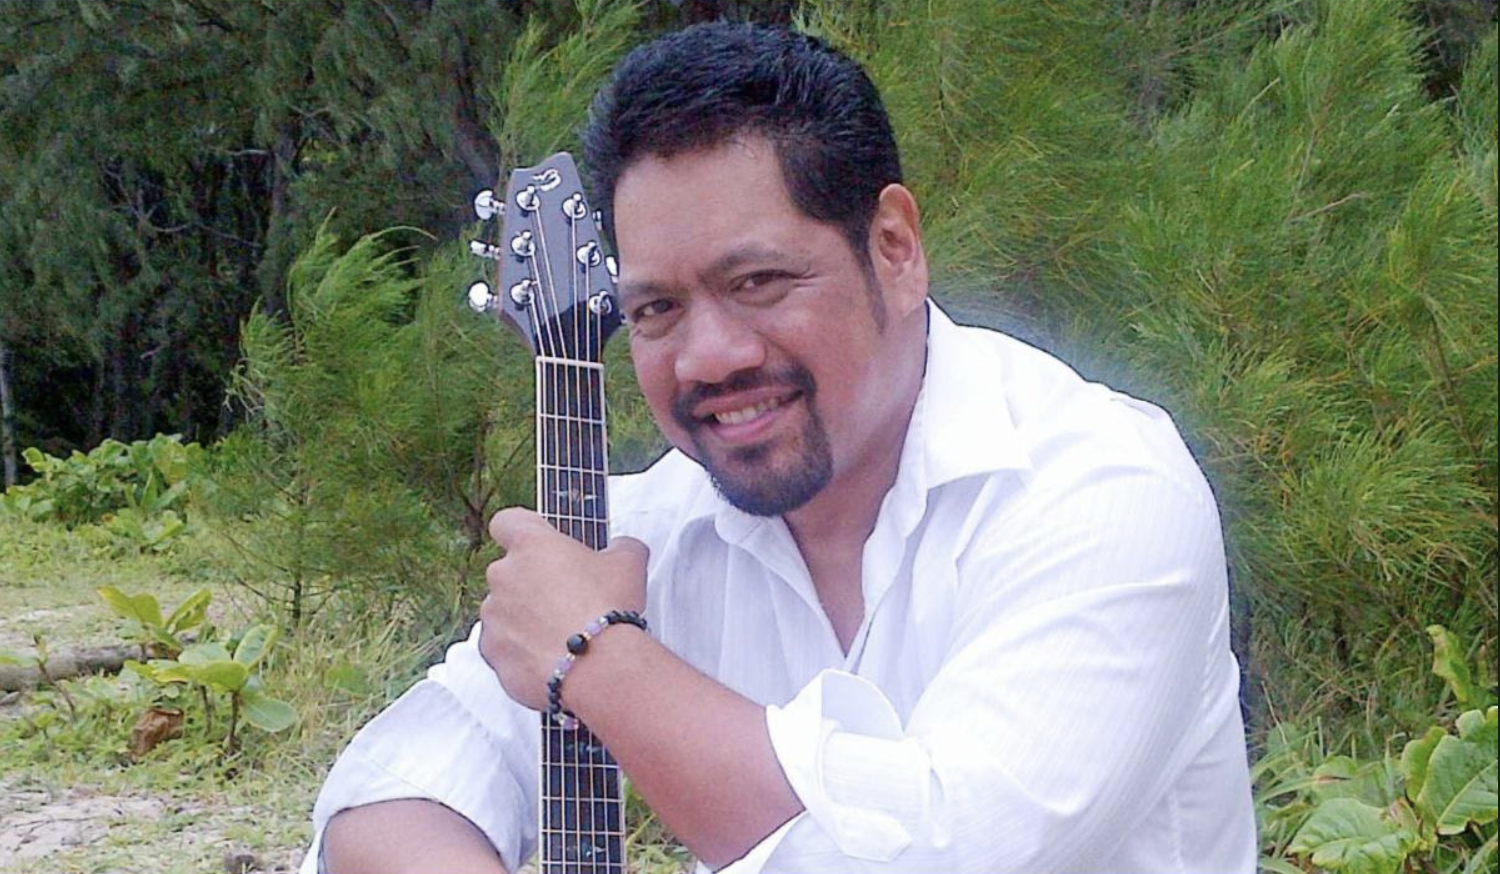 Live @ the MACC Features Nathan Aweau, Sept. 25